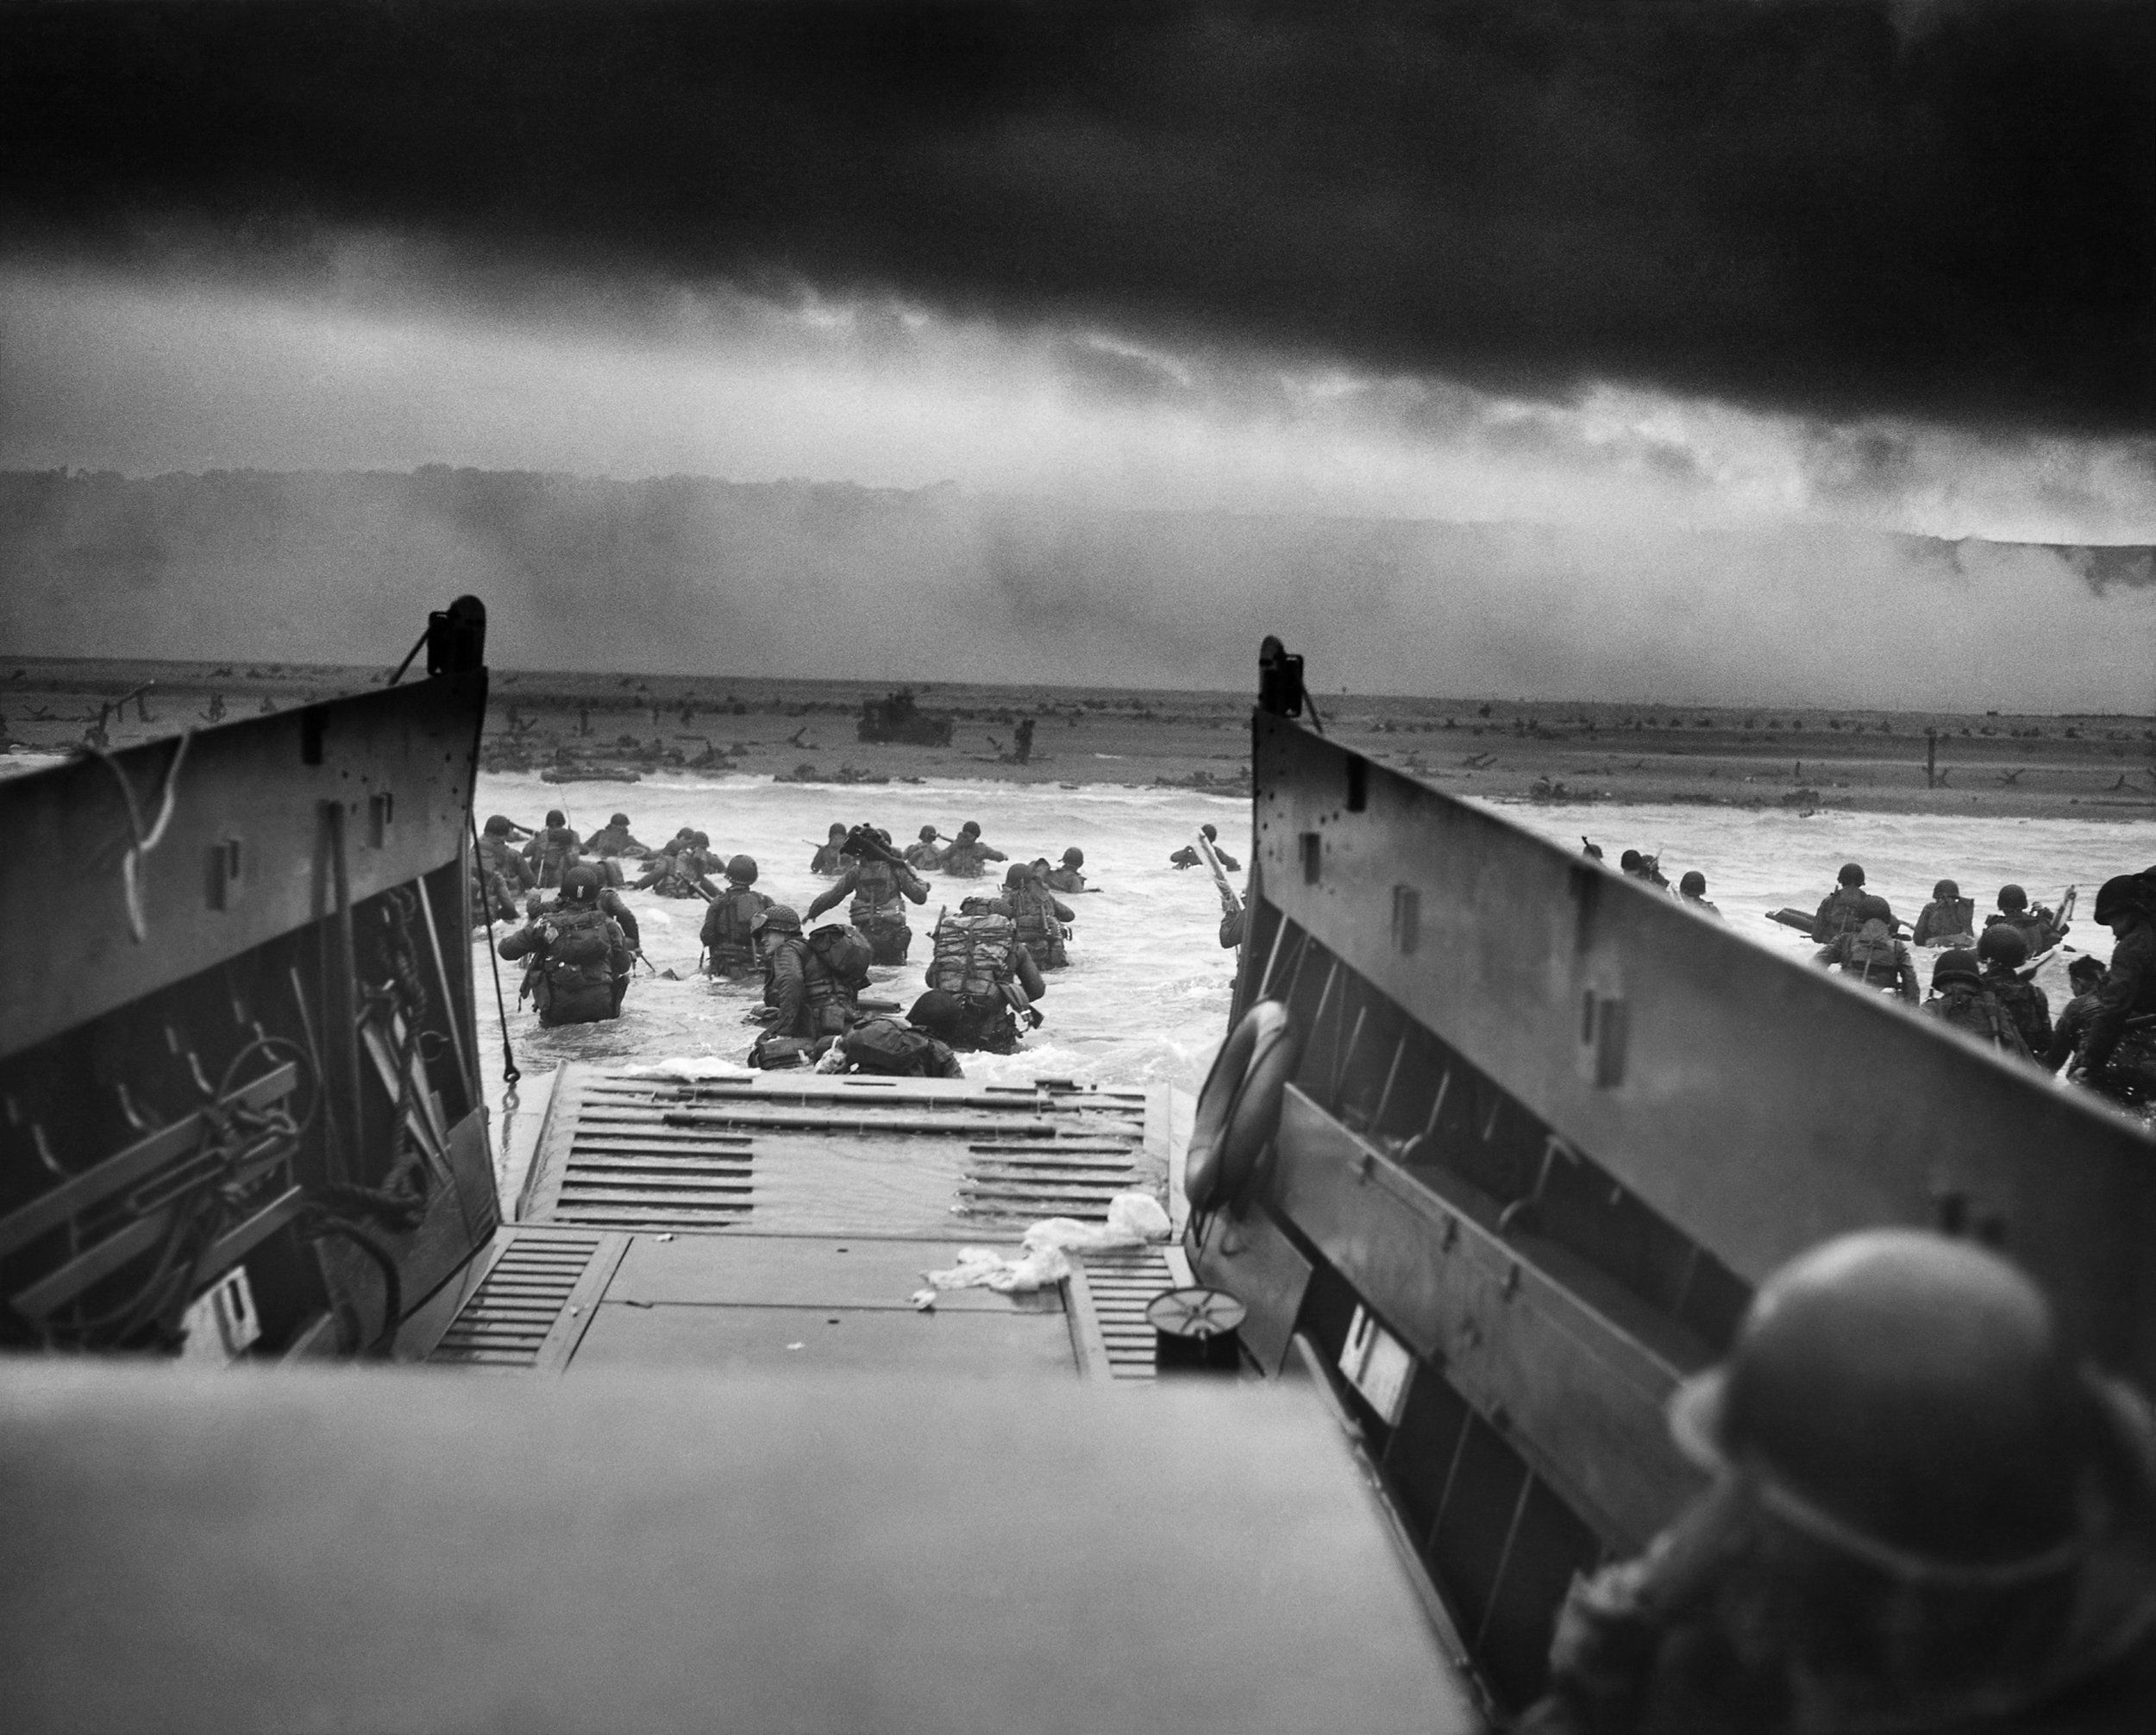 Landing on Omaha Beach, June 6, 1944. Photograph by Chief Photographer's Mate Robert F. Sargent